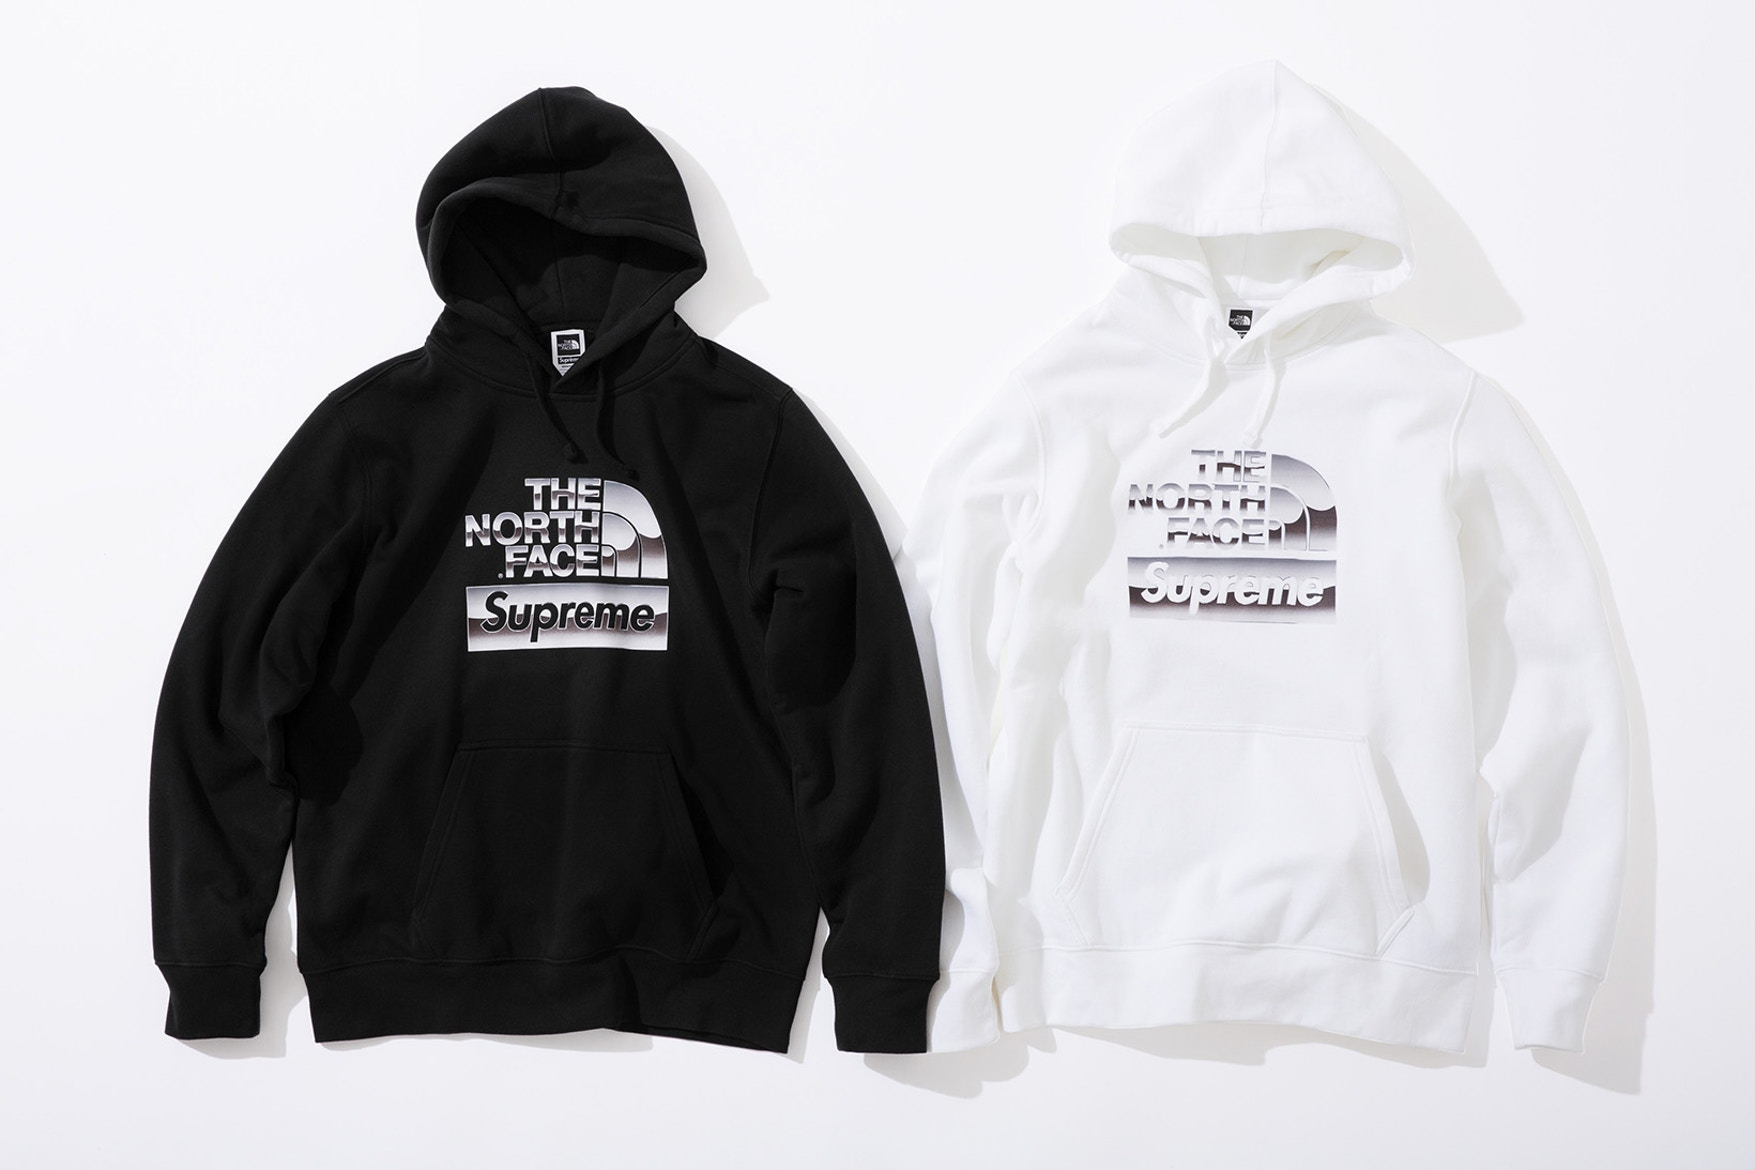 sự kết hợp Supreme với The North Face